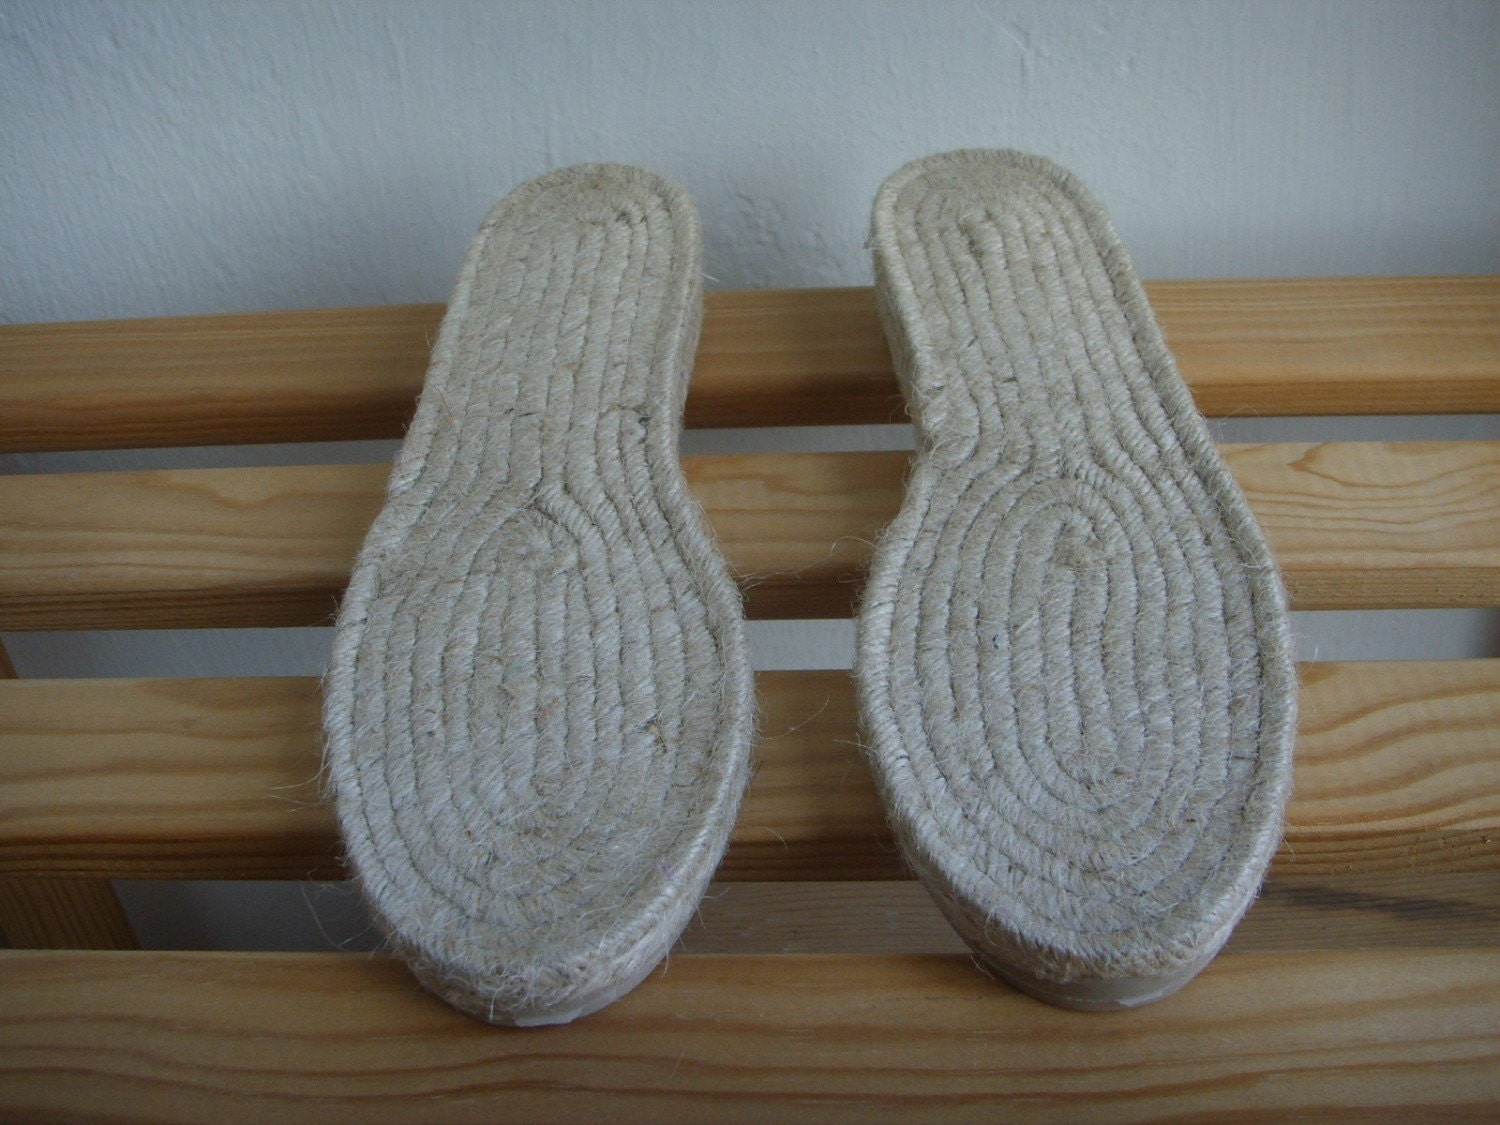 Jute Spadrilles Soles For Your Shoe Making Projects 1 5